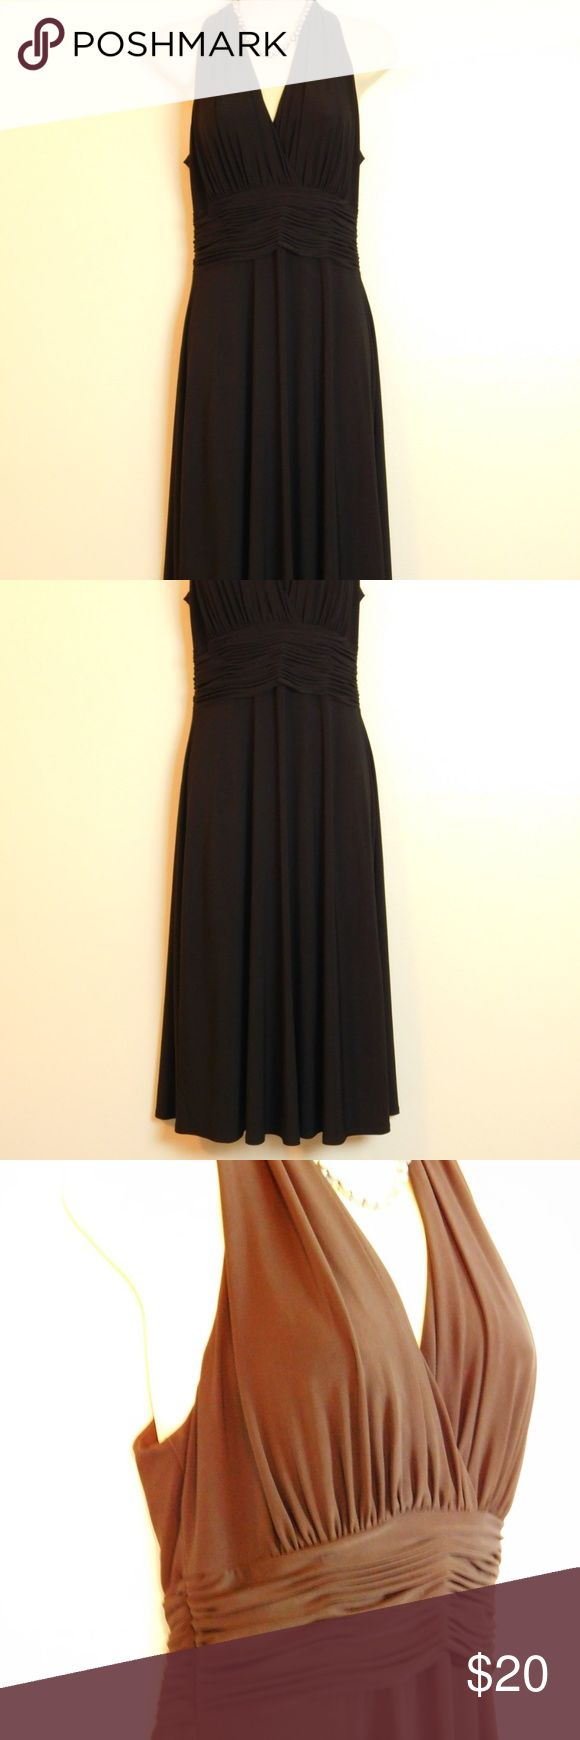 """Black Halter Ruched Flare Cocktail Dress Size 8 """"Evan Picone"""" solid back sleeveless cocktail dress perfect for special occasions and parties. EUC excellent pre-owned condition, gently used no damages Size Ladies 8 reg Color:  Black Length 43"""" back neck to hem, Bust 17"""" across front  Pullover with high trapeze neckline Ruched faux wrap bodice, no bra padding Ruched gathered high waist Sleeveless Full fit and flare skirt Bodice is lined, skirt is not  Fabric & Care 95% polyester, 5% spandex…"""